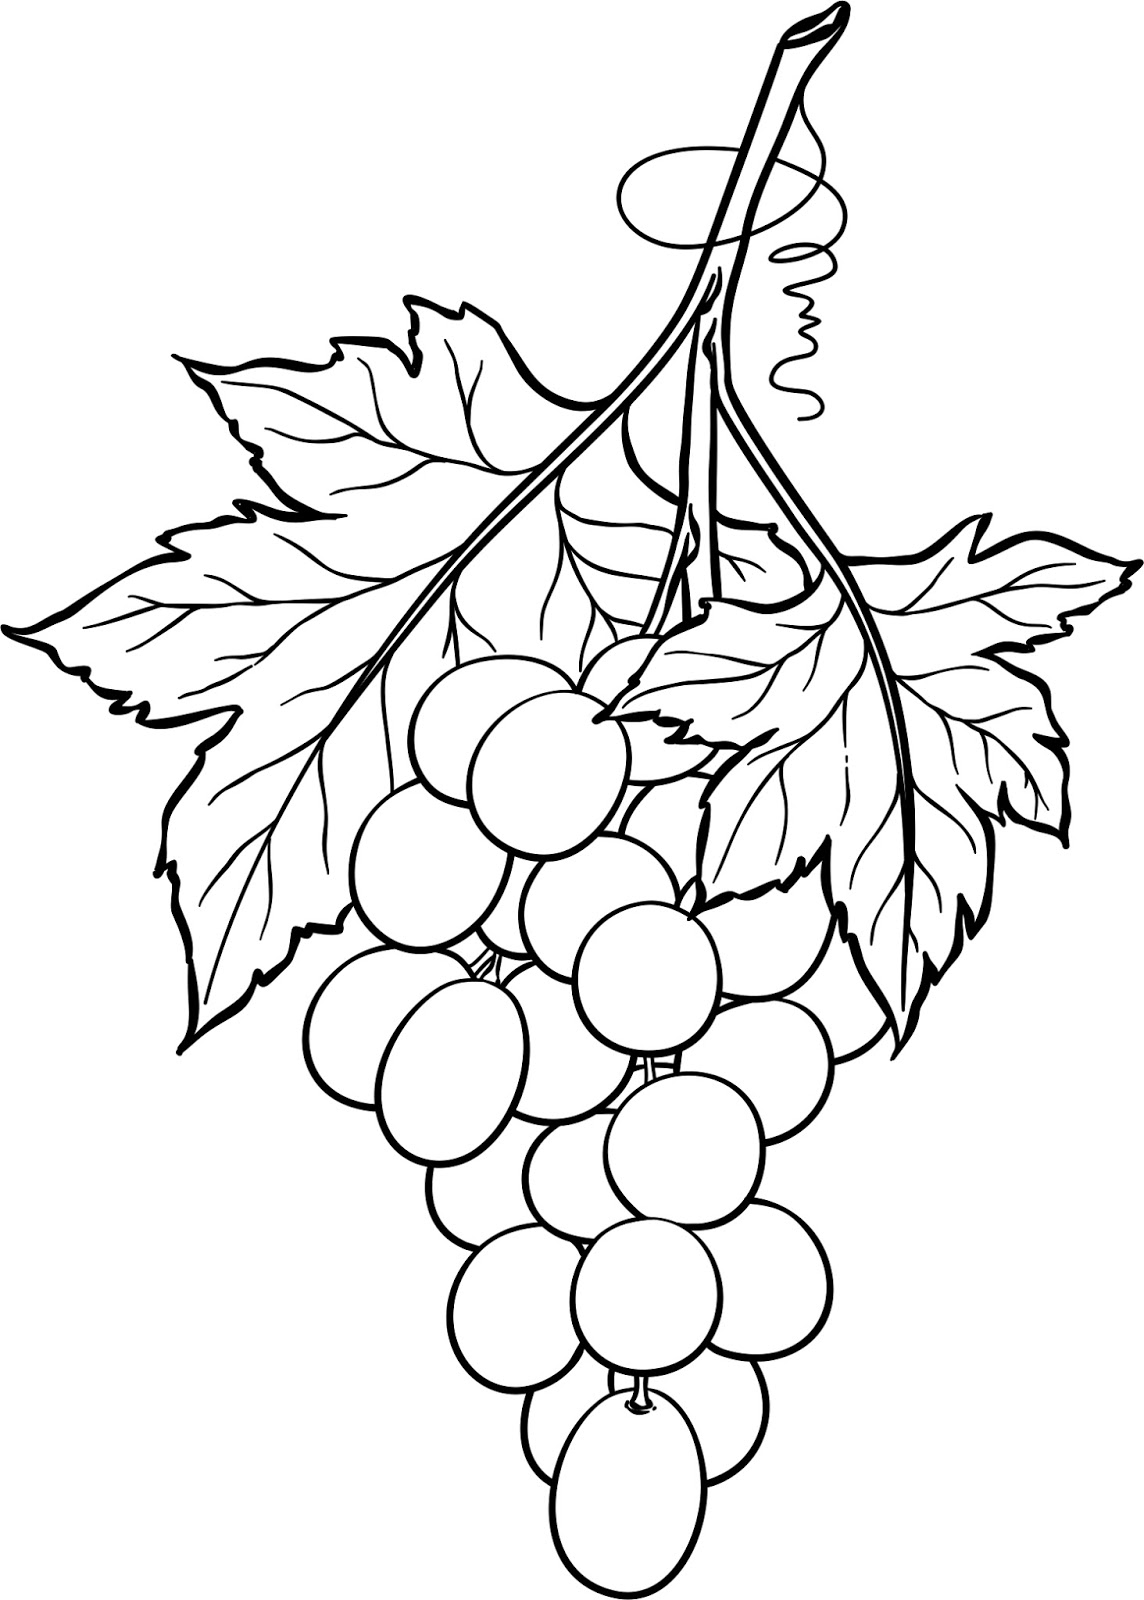 grapes drawing hand drawing of fresh pione grapes on white background grapes drawing